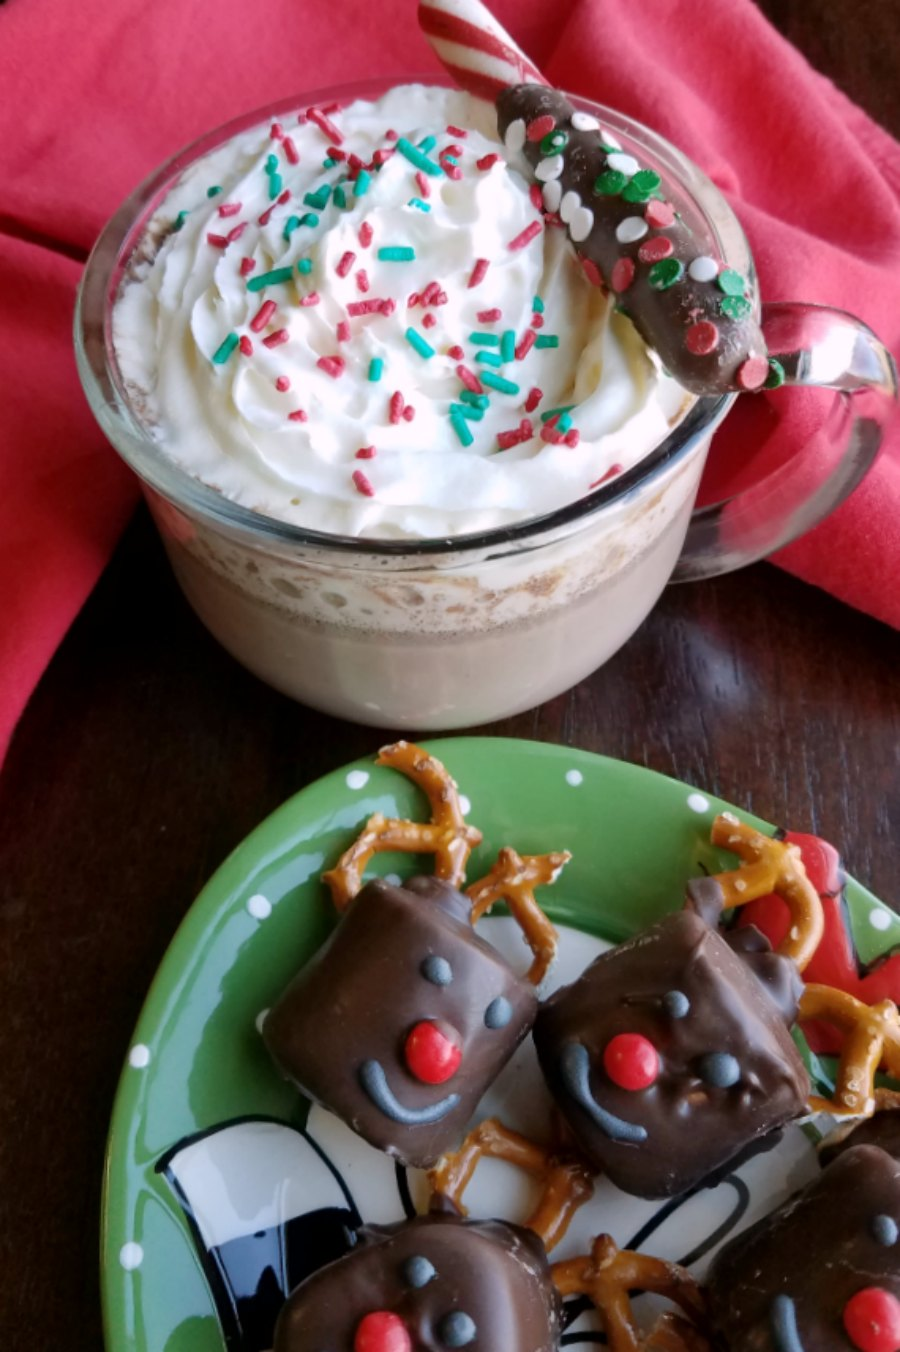 plate of chocolate dipped marshmallows next to mug of hot chocolate